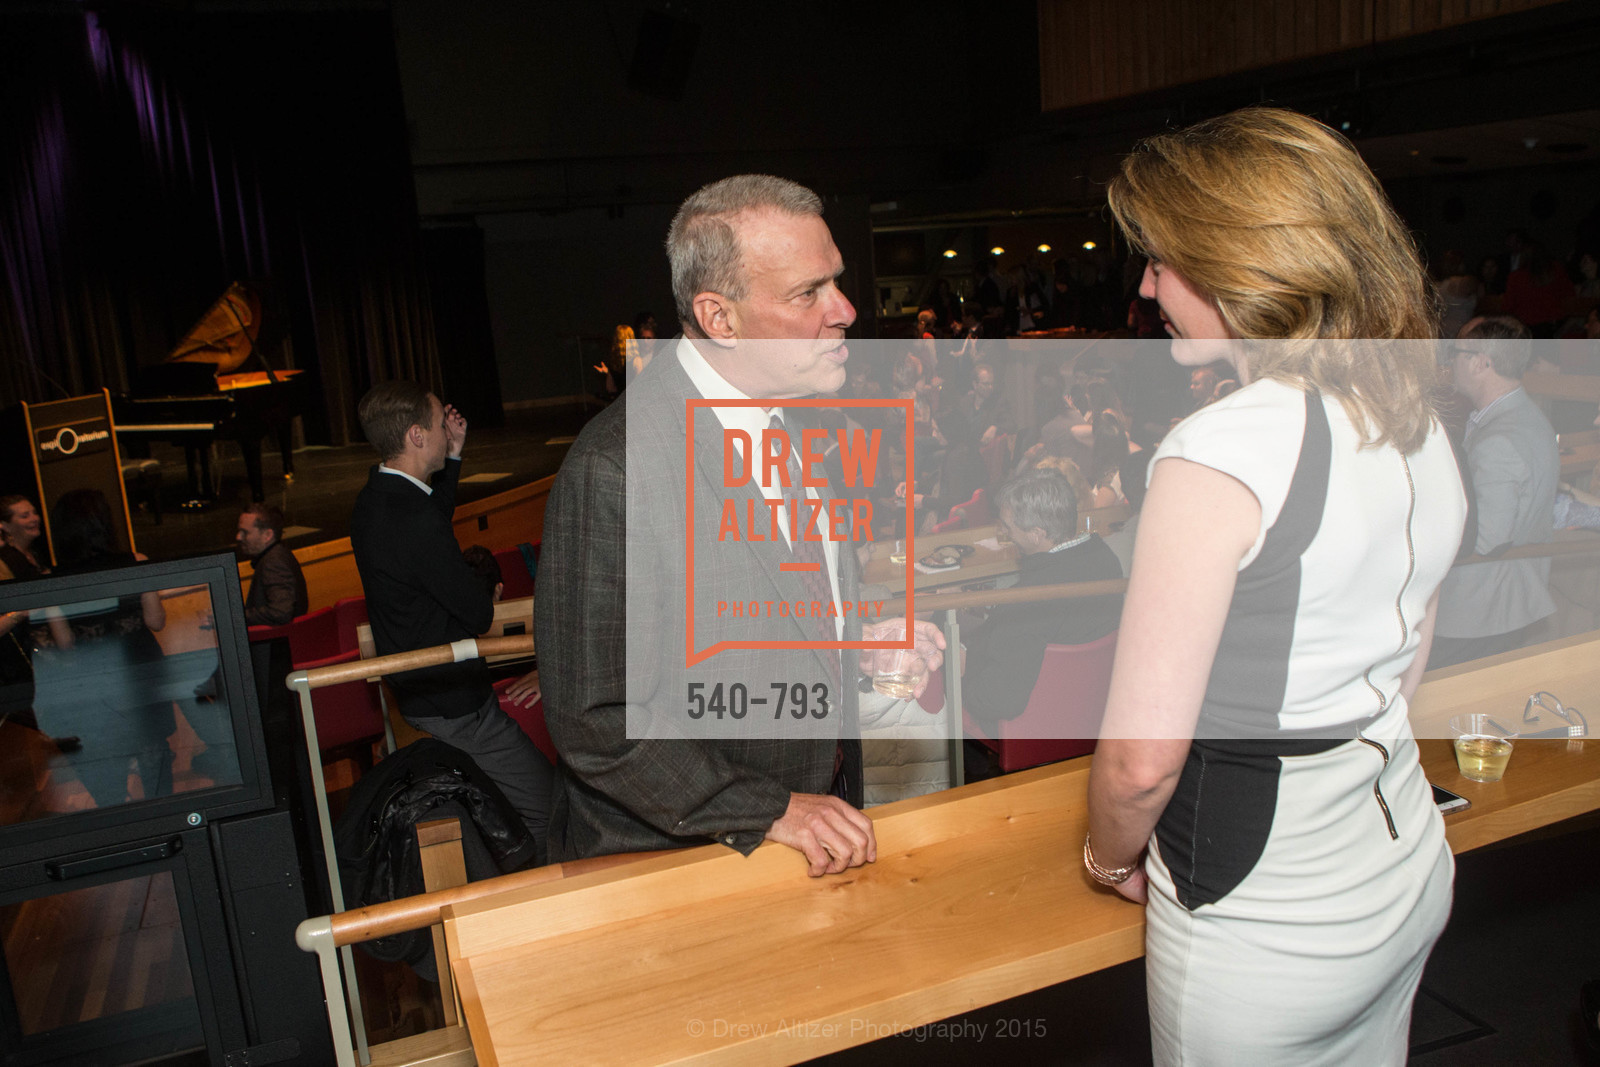 David Gockley, Kari Lincks, SF BRAVO CLUB Sneak Peek at the EXPLORATORIUM, US, April 23rd, 2015,Drew Altizer, Drew Altizer Photography, full-service agency, private events, San Francisco photographer, photographer california